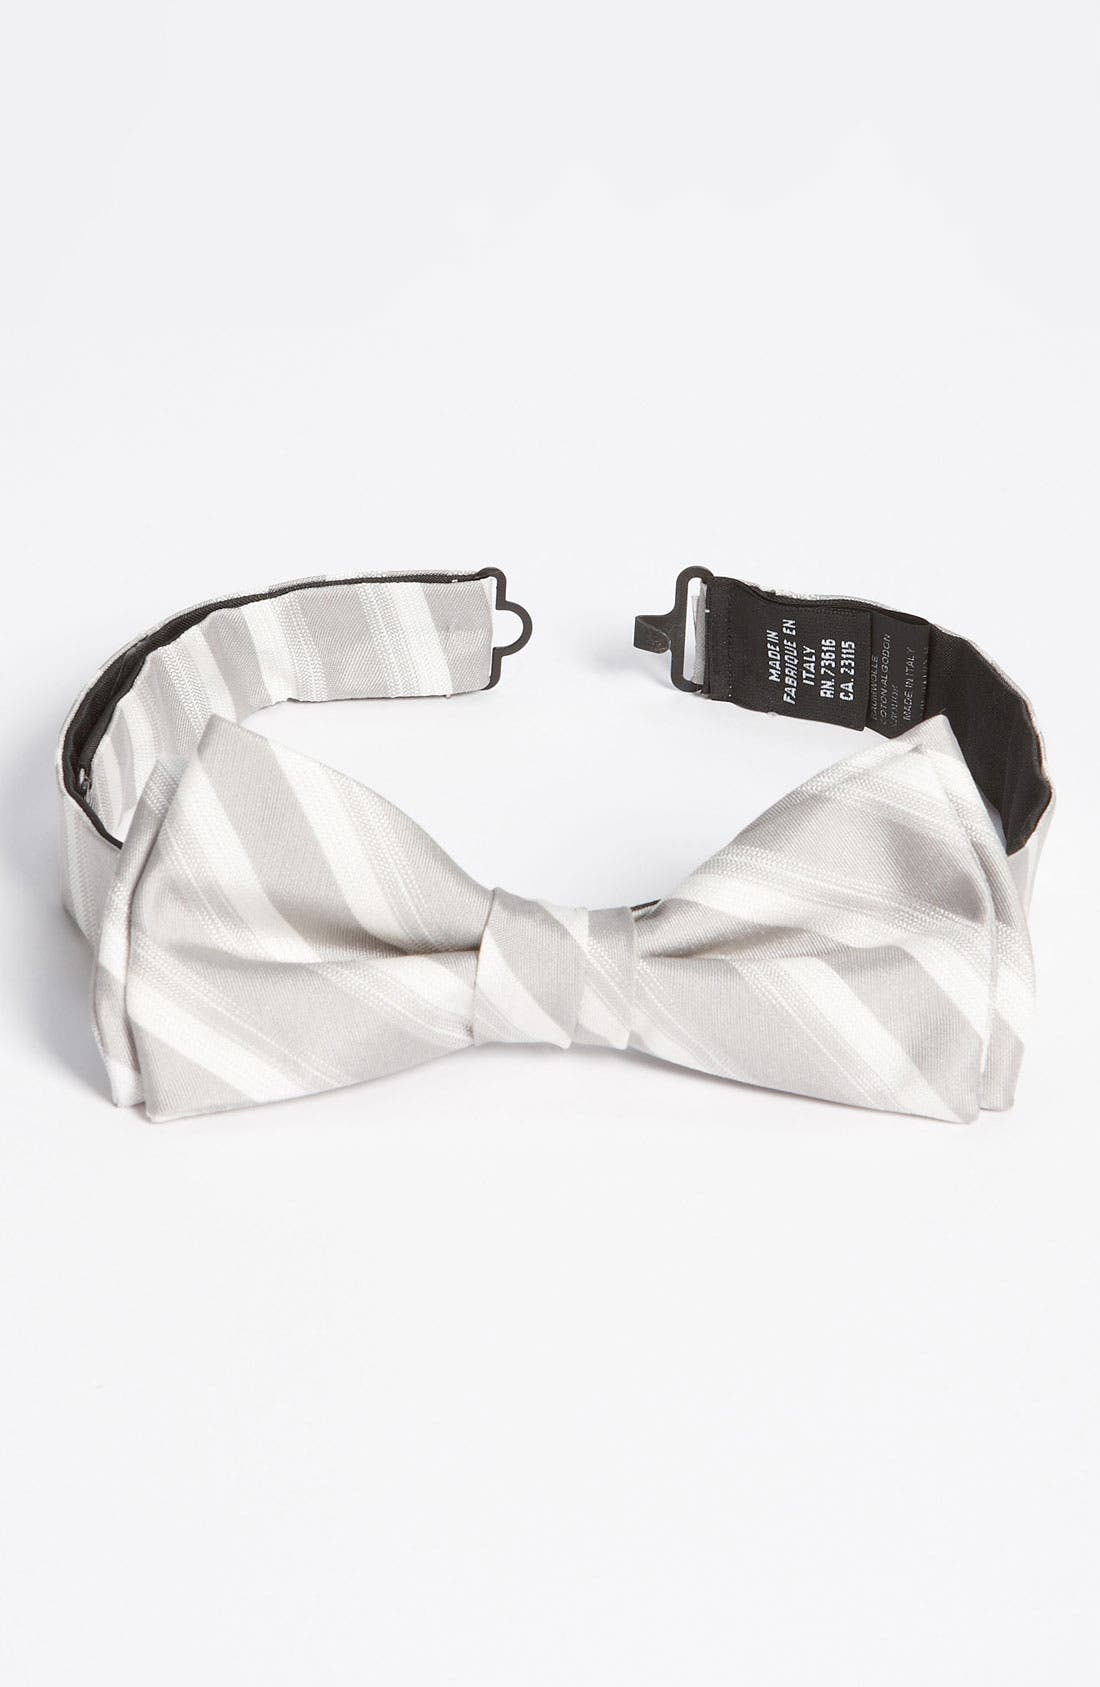 Alternate Image 1 Selected - BOSS Black Bow Tie